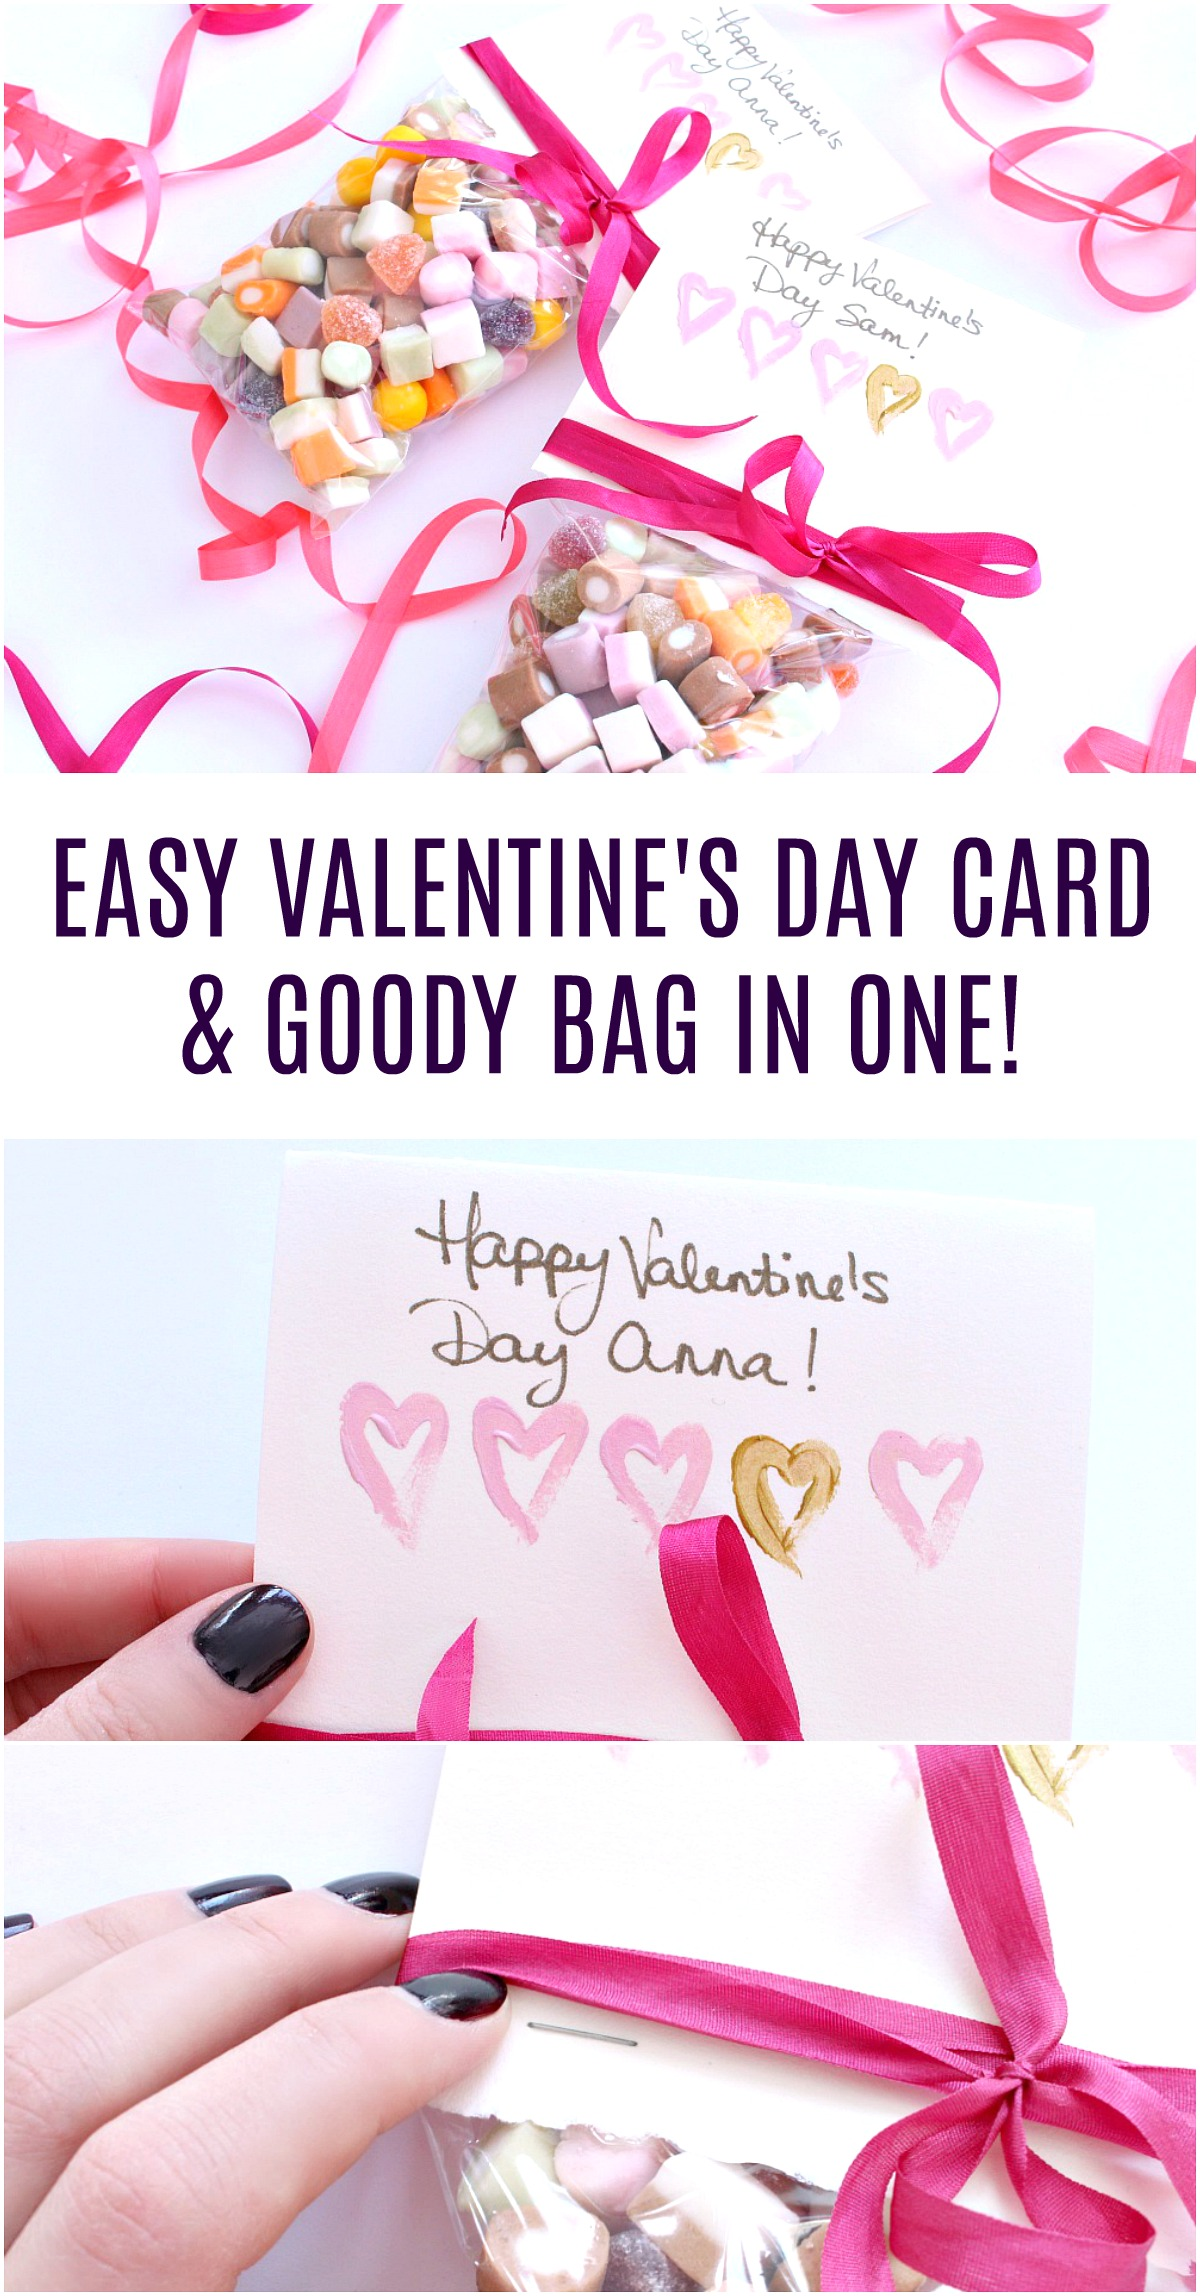 Easy to Make Valentine's Day Card and Goody Bag in One! #valentinesday #valentinecrafts #diyvalentinecard #papercrafts